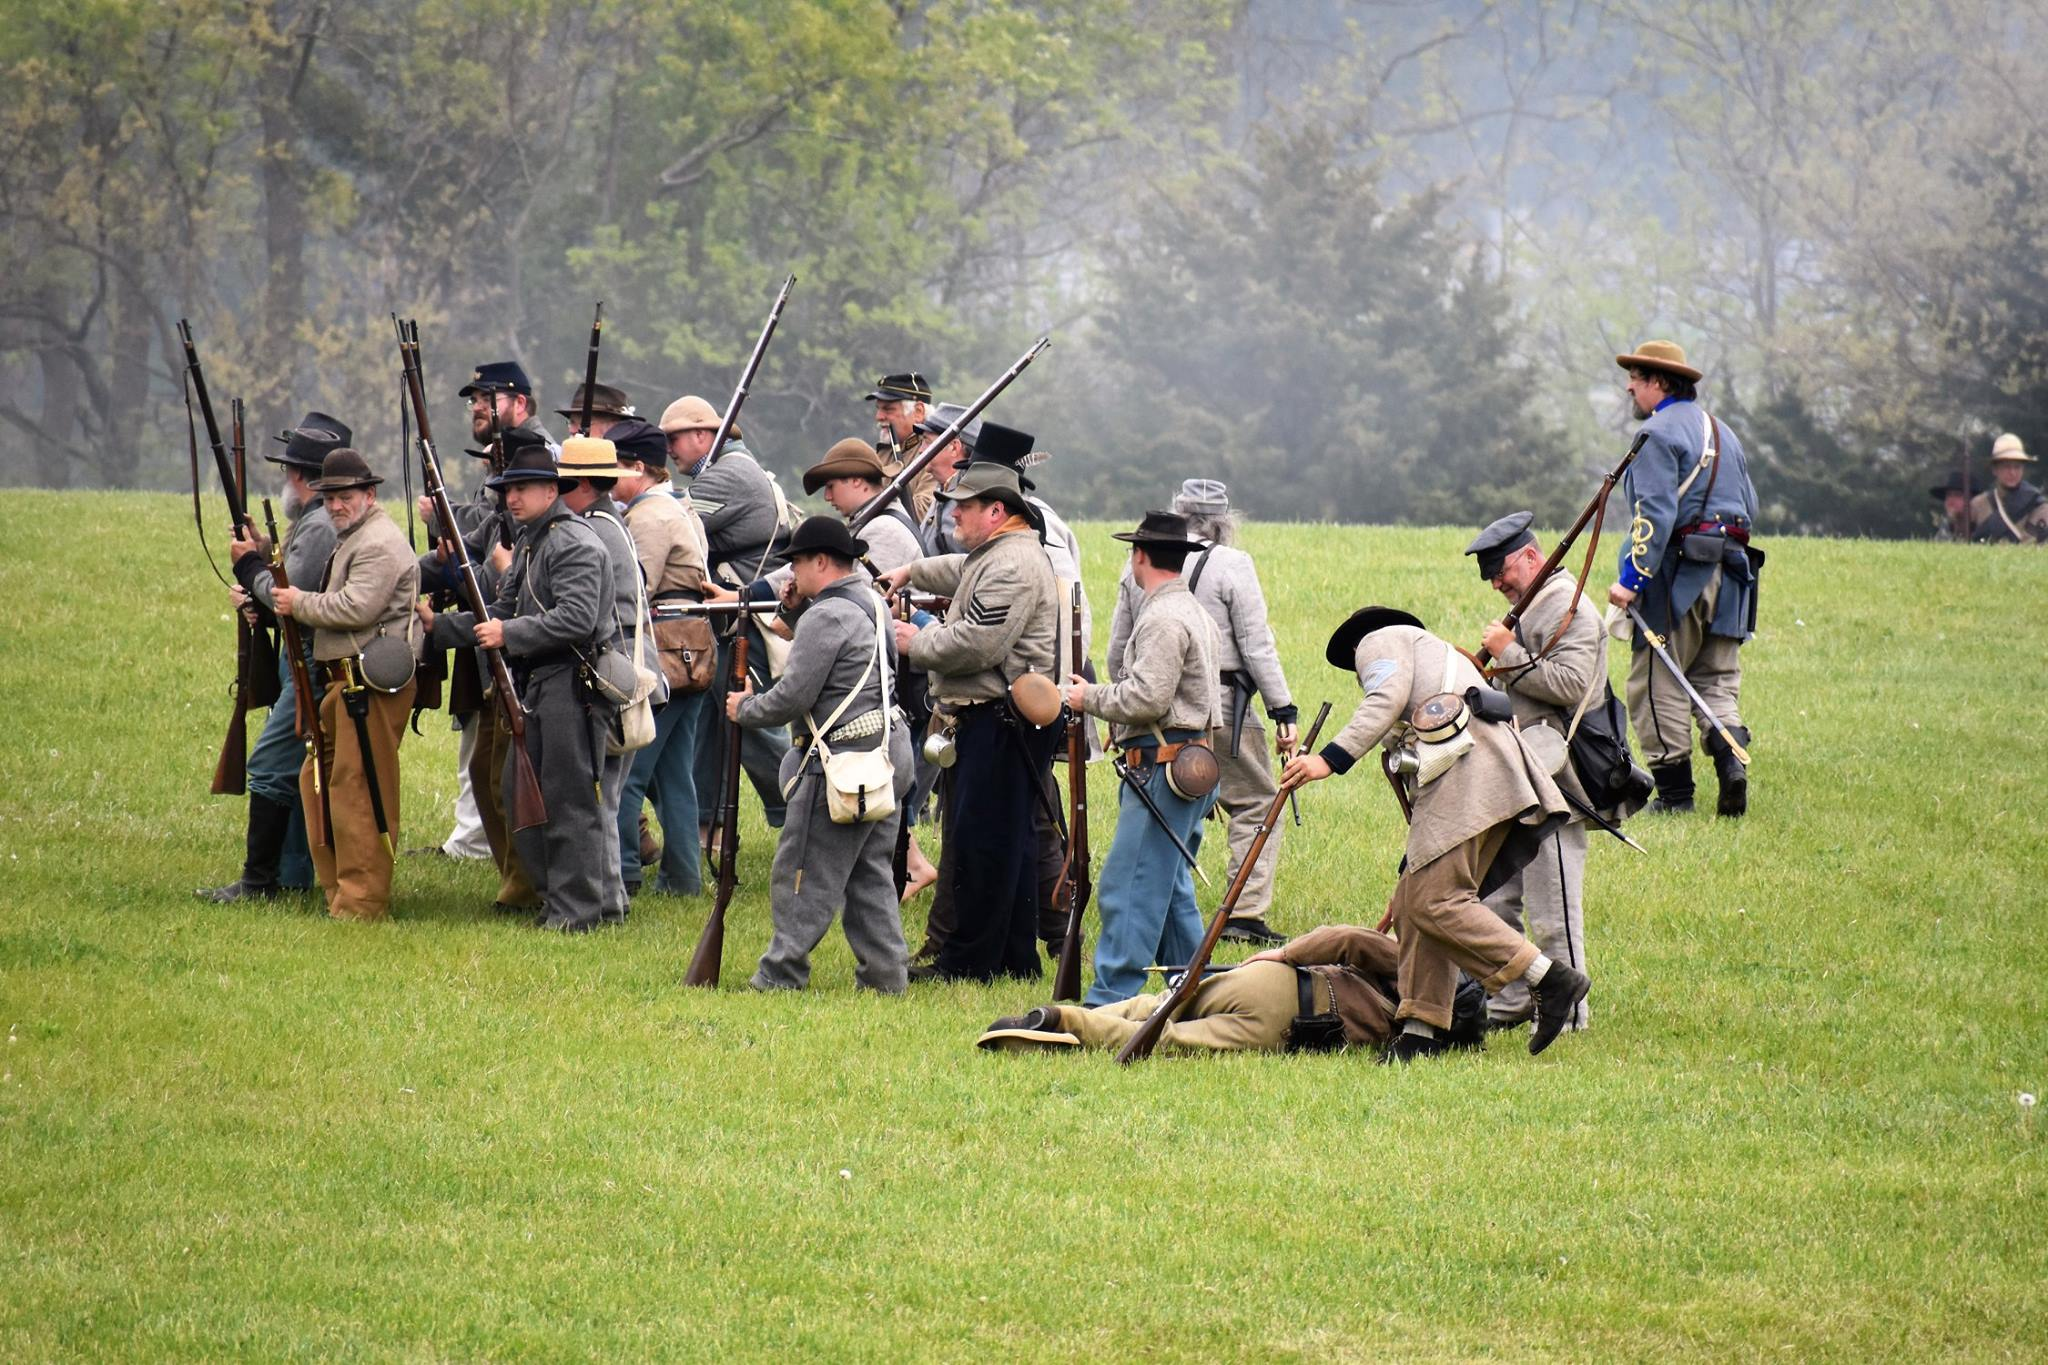 Civil War reenactment at Hartford City Civil War Days in Indiana